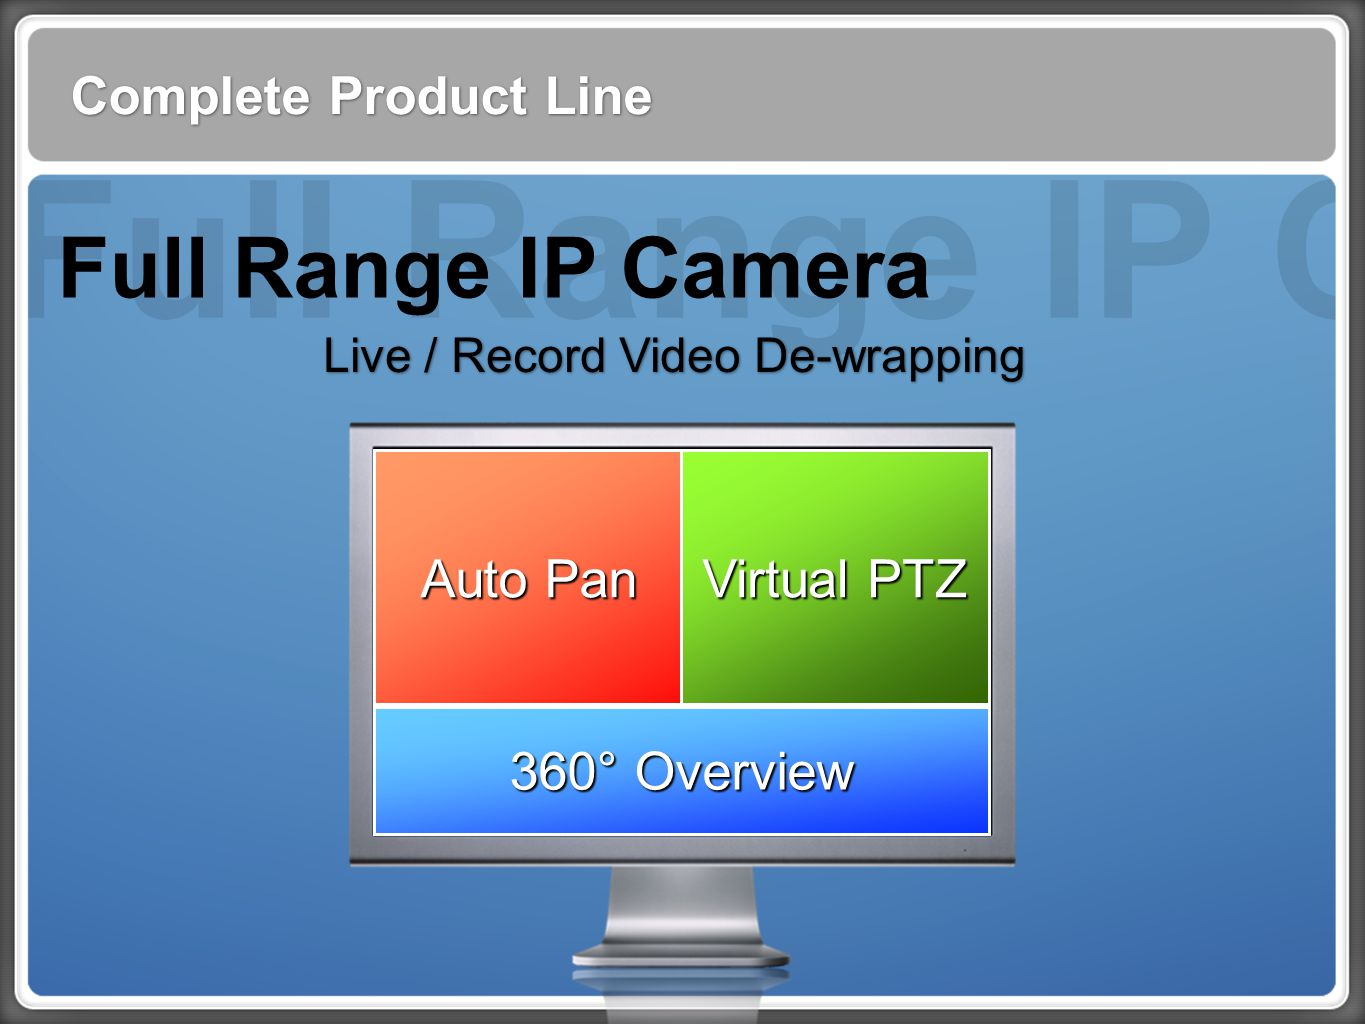 Full Range IP Cam Full Range IP Camera Complete Product Line Auto Pan